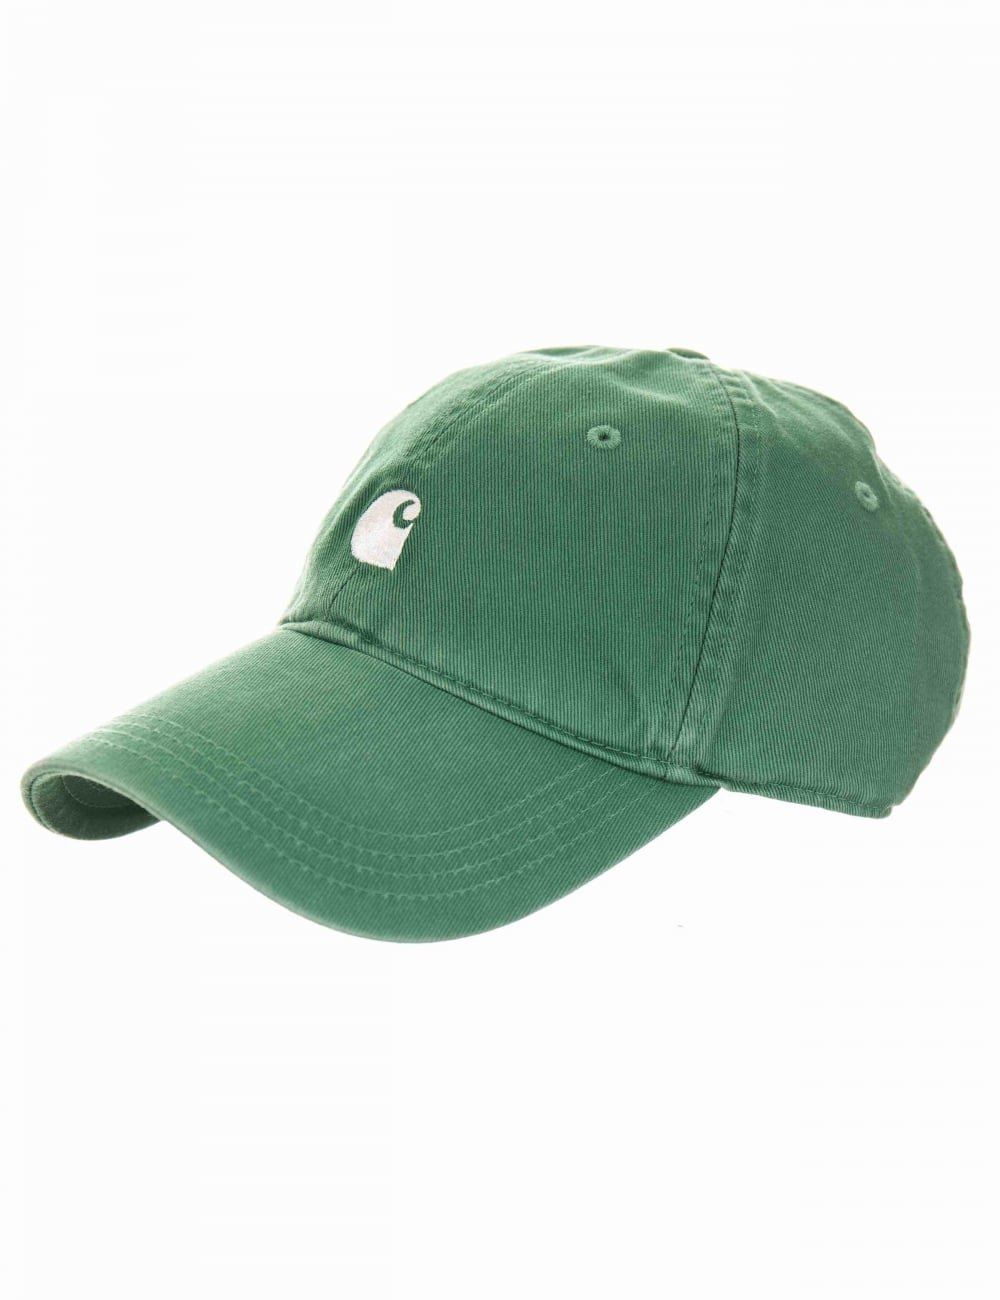 Men s Carhartt Hats - Lyst - Your World of Fashion c59d8cfda44f